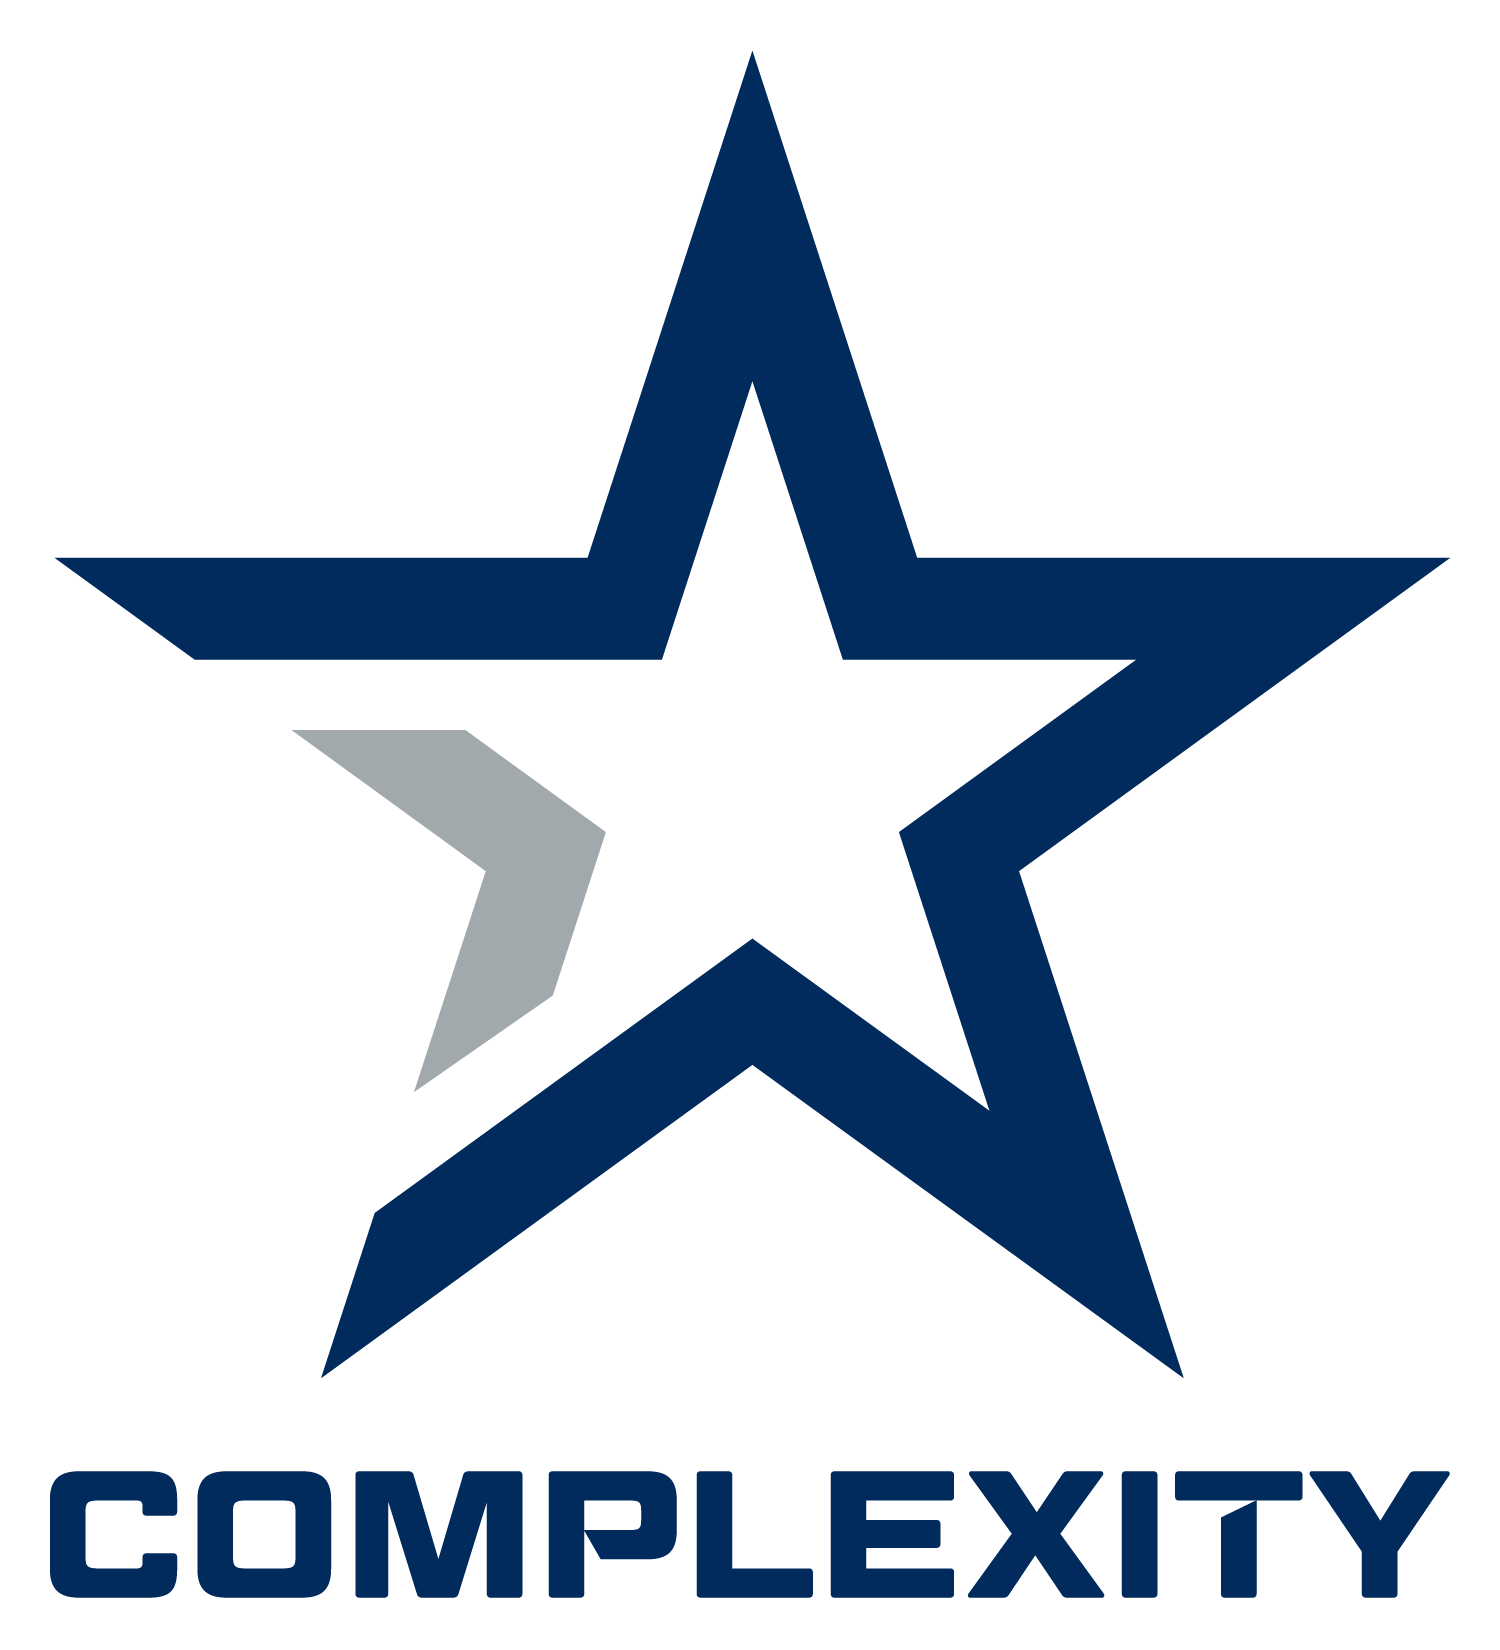 Dota 2 Complexity Gaming Team Logo